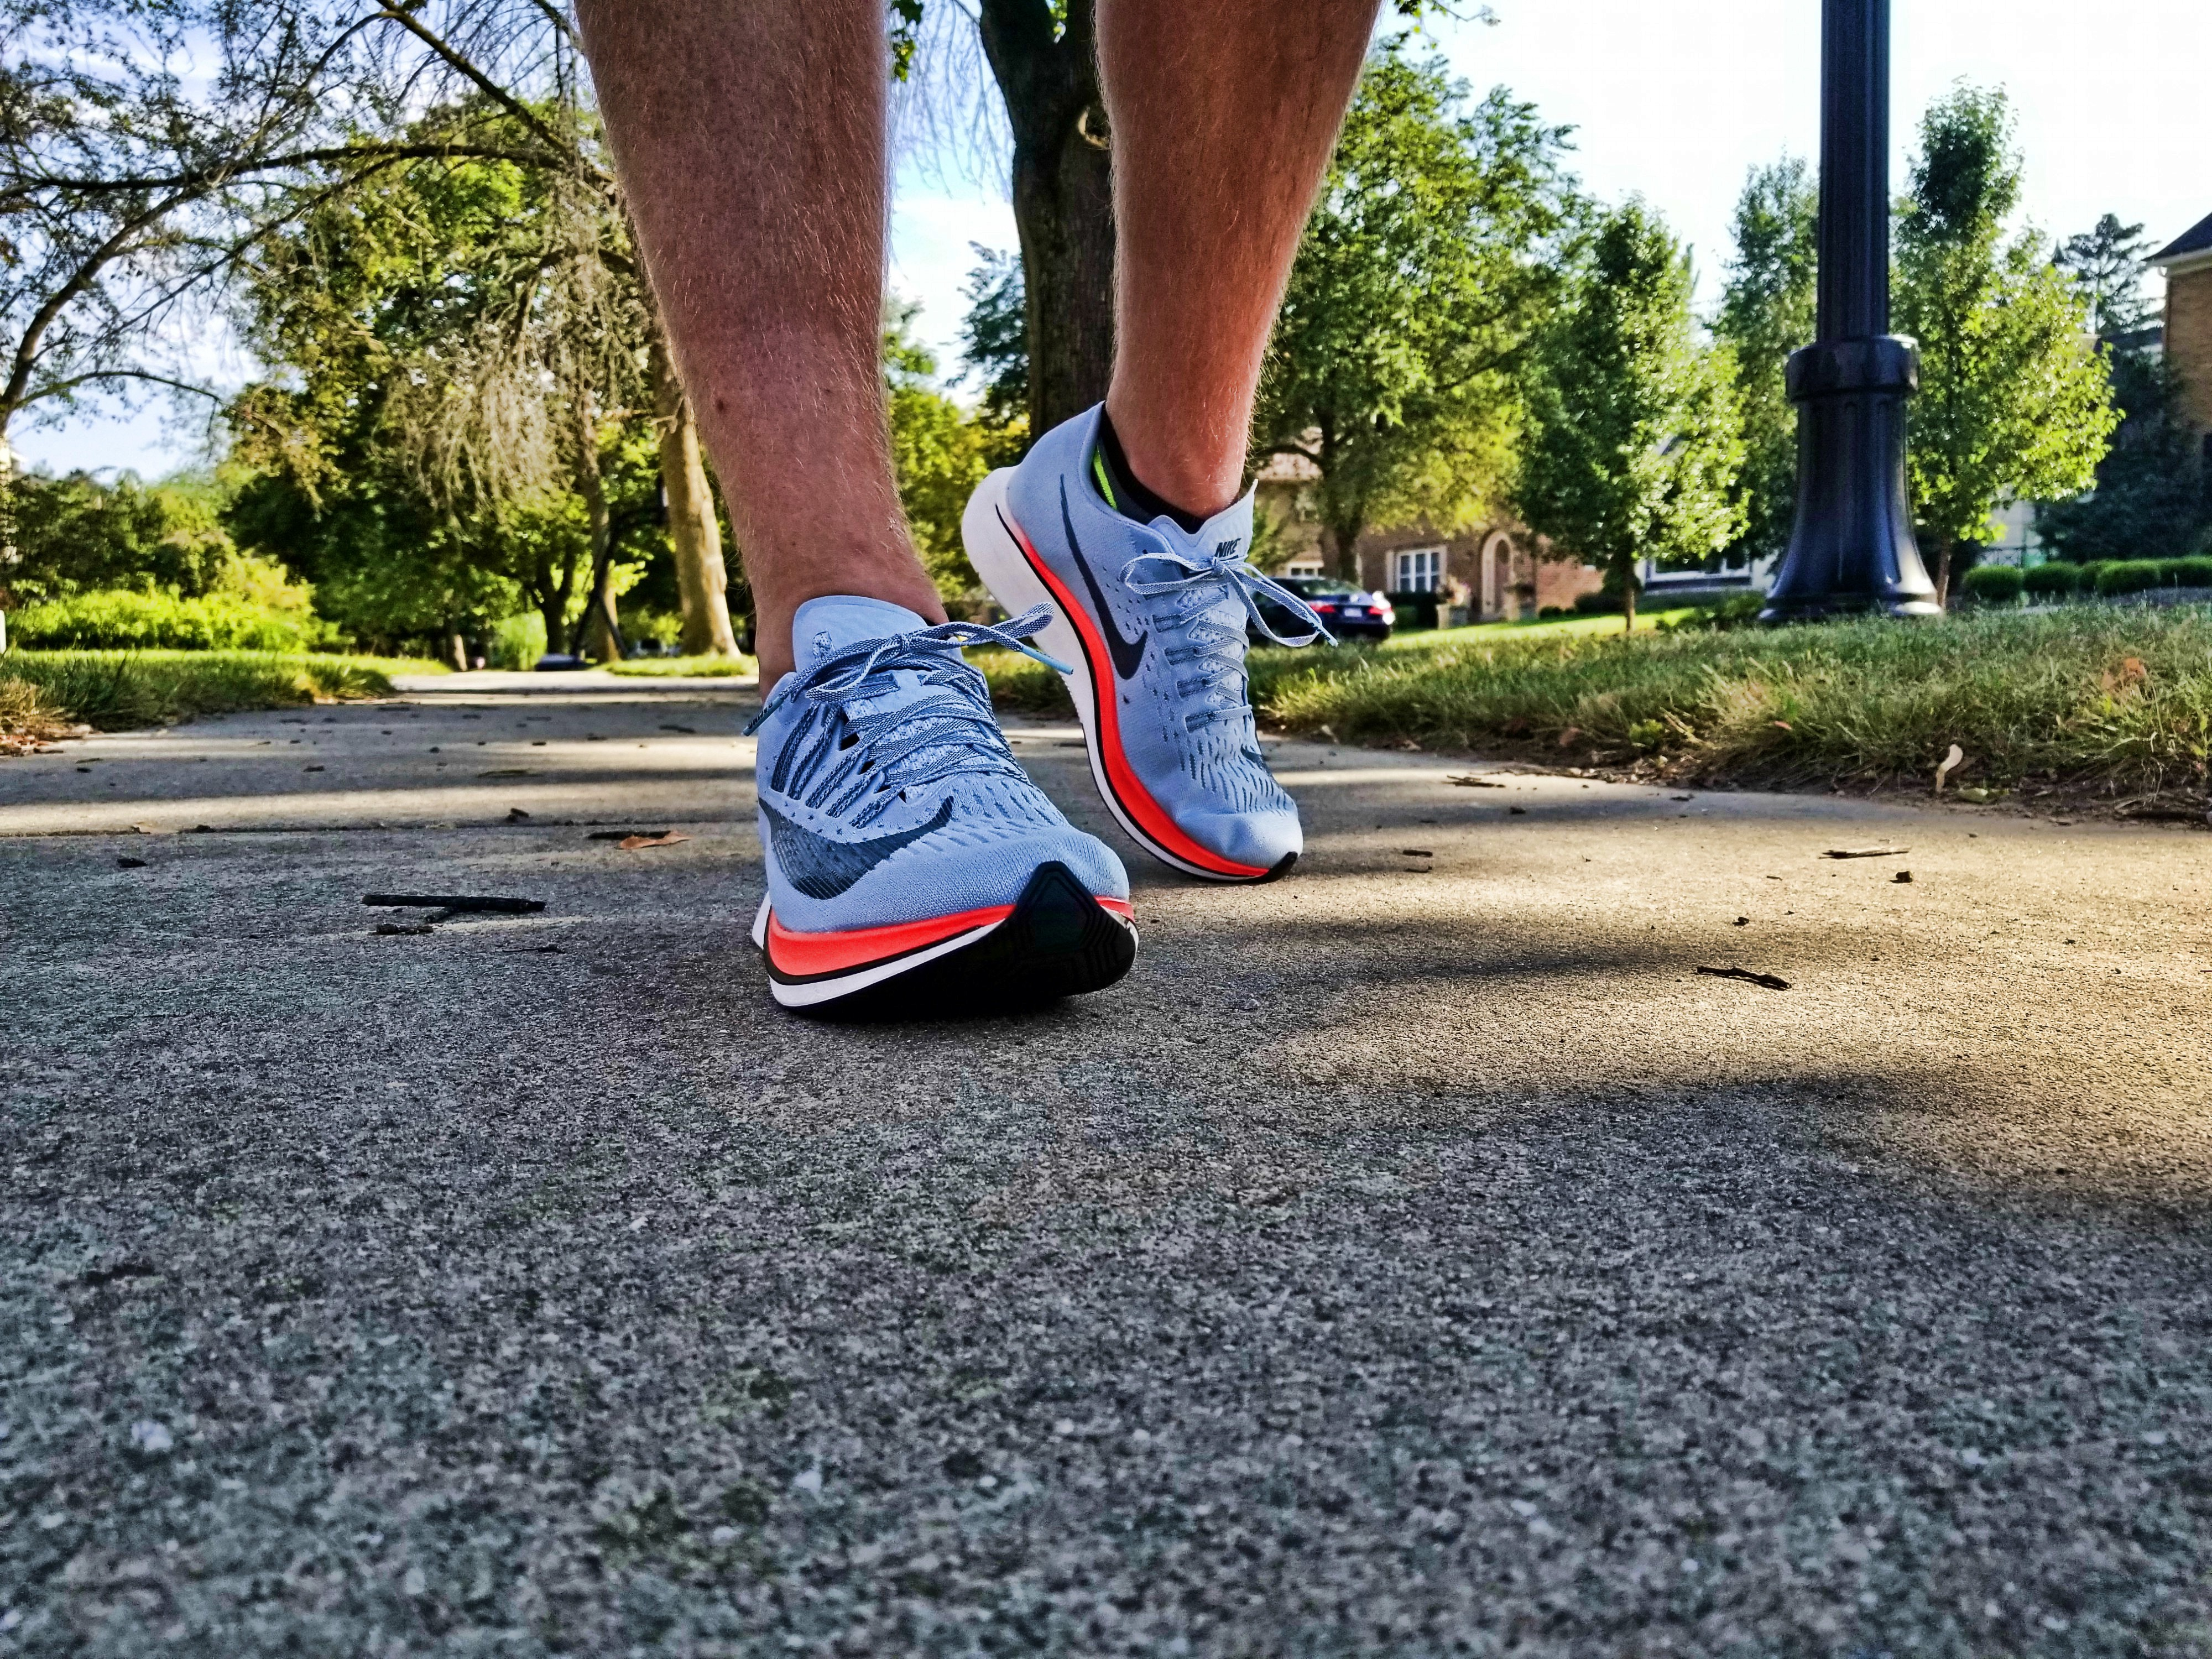 9c59cf6cb95 Nike Zoom Fly - Fitness Review